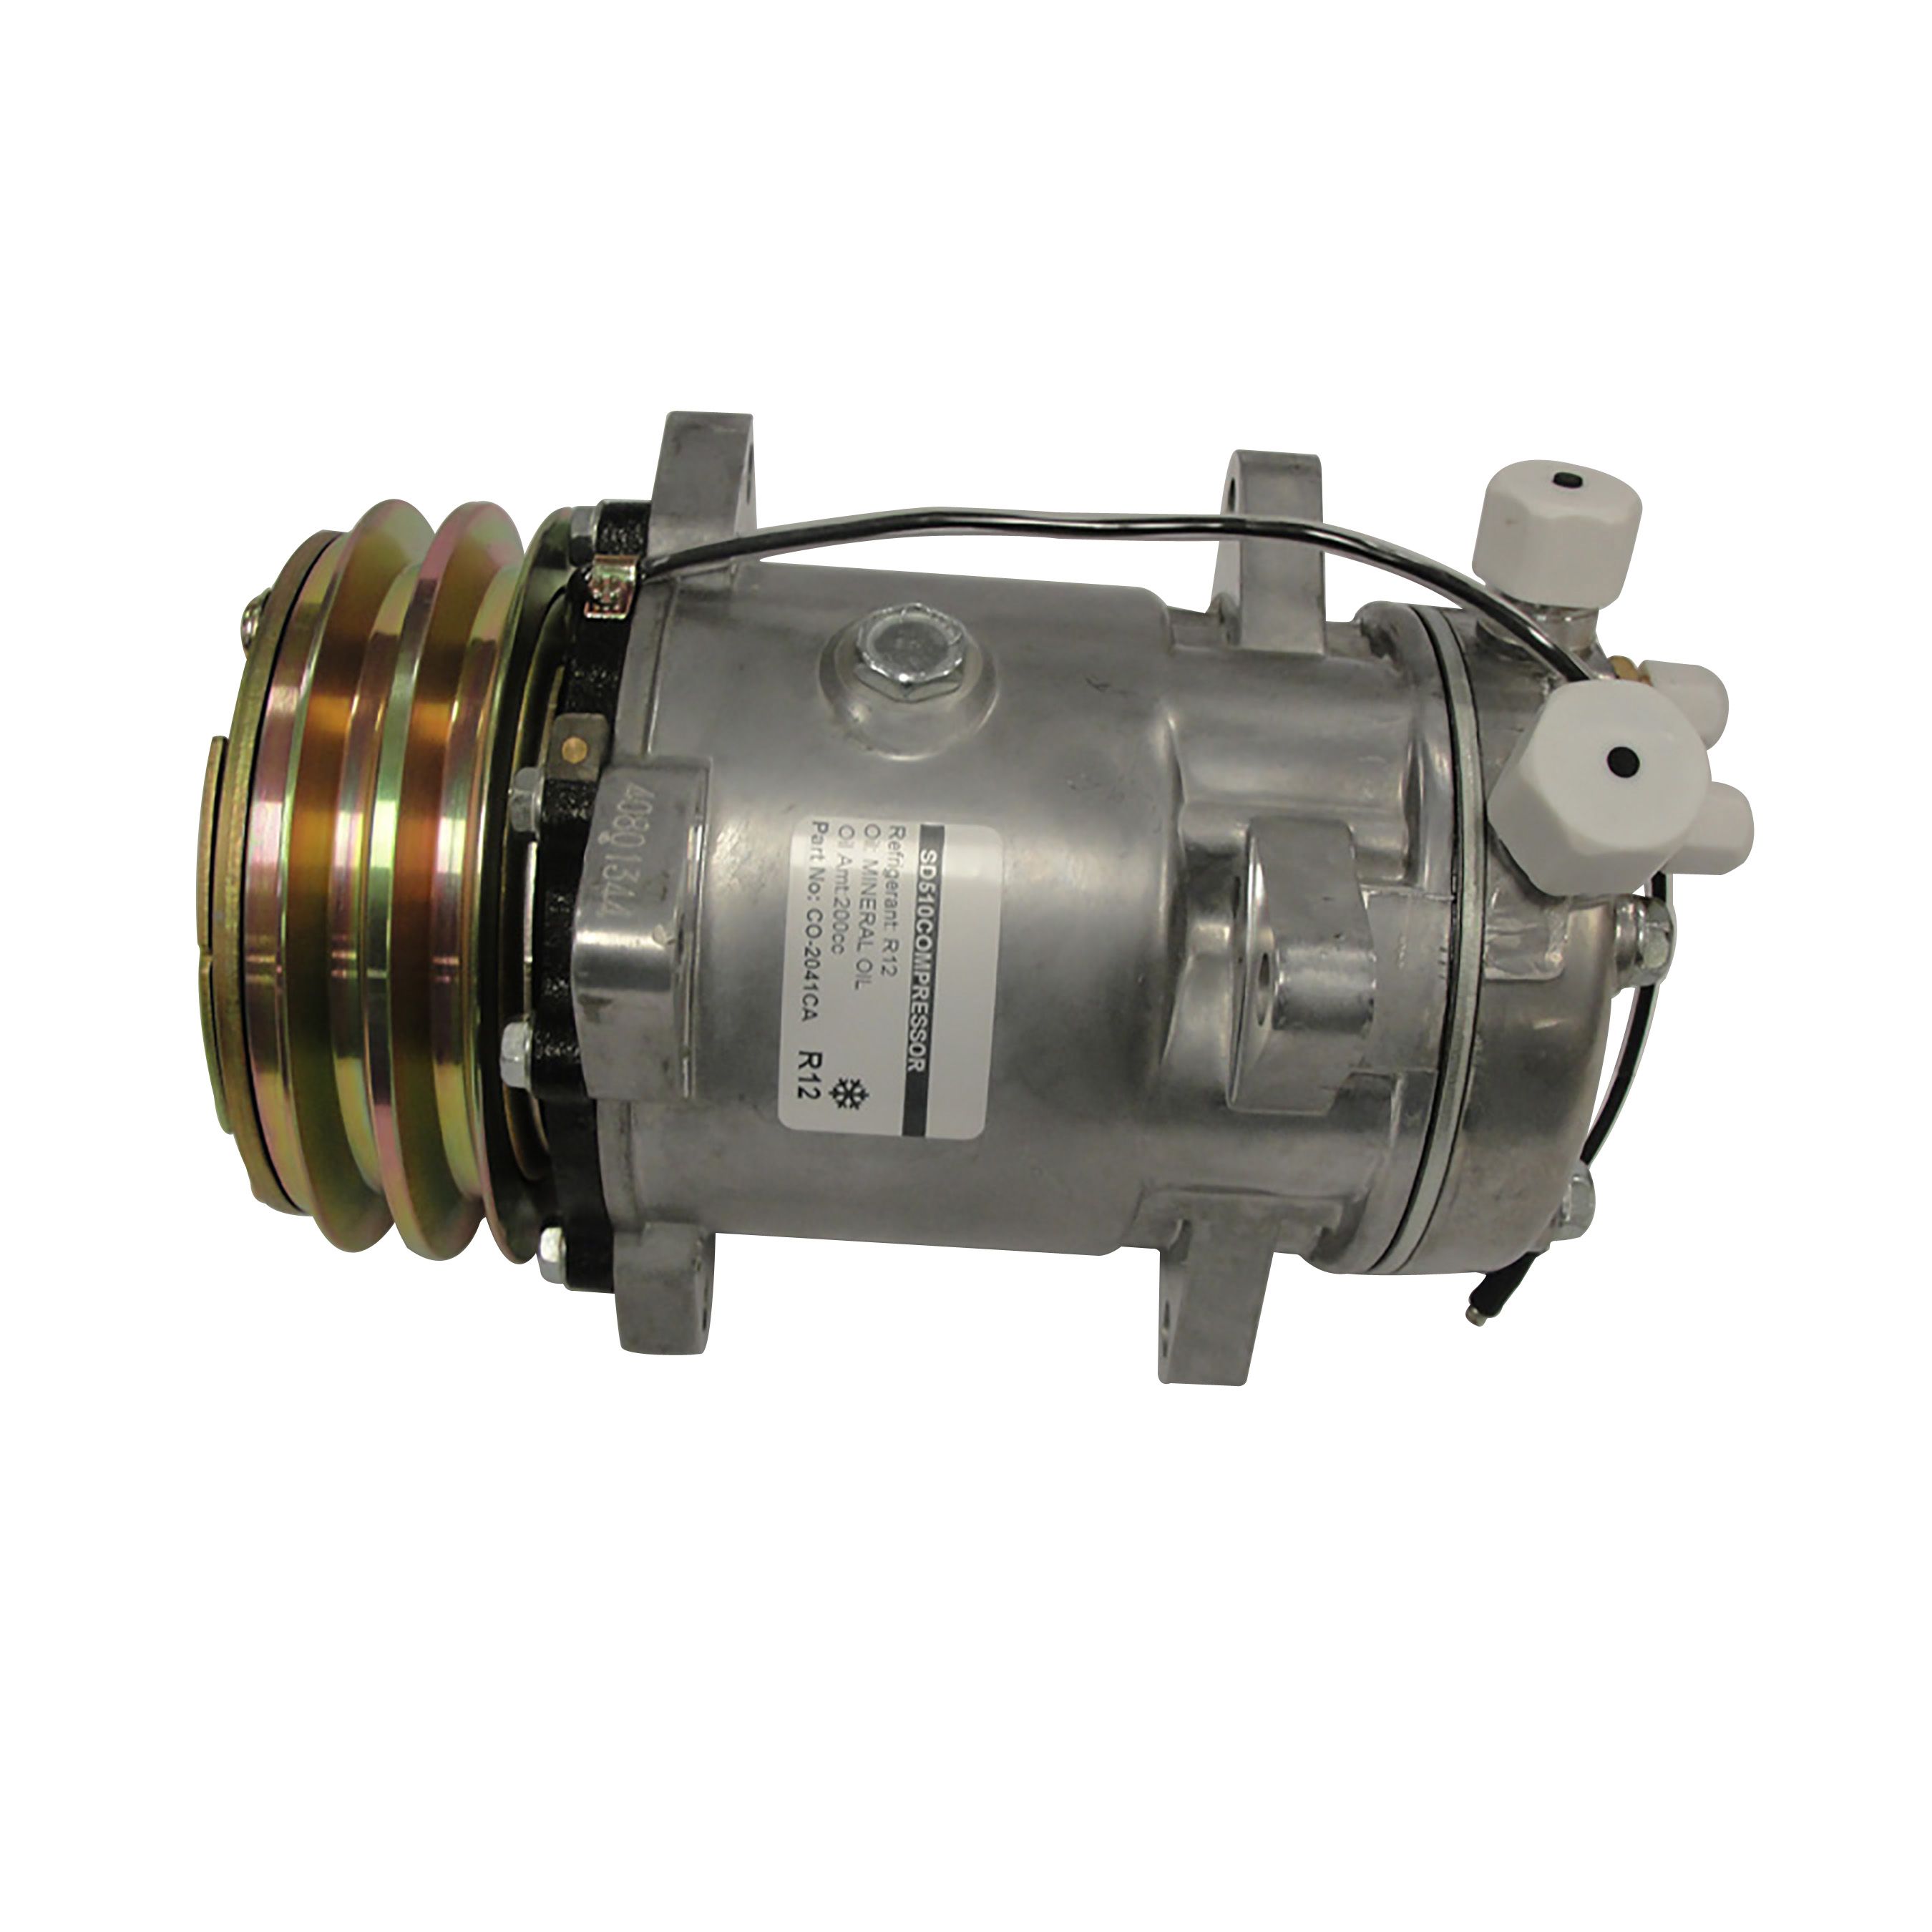 International Harvester Compressor Diameter: 5 1/4